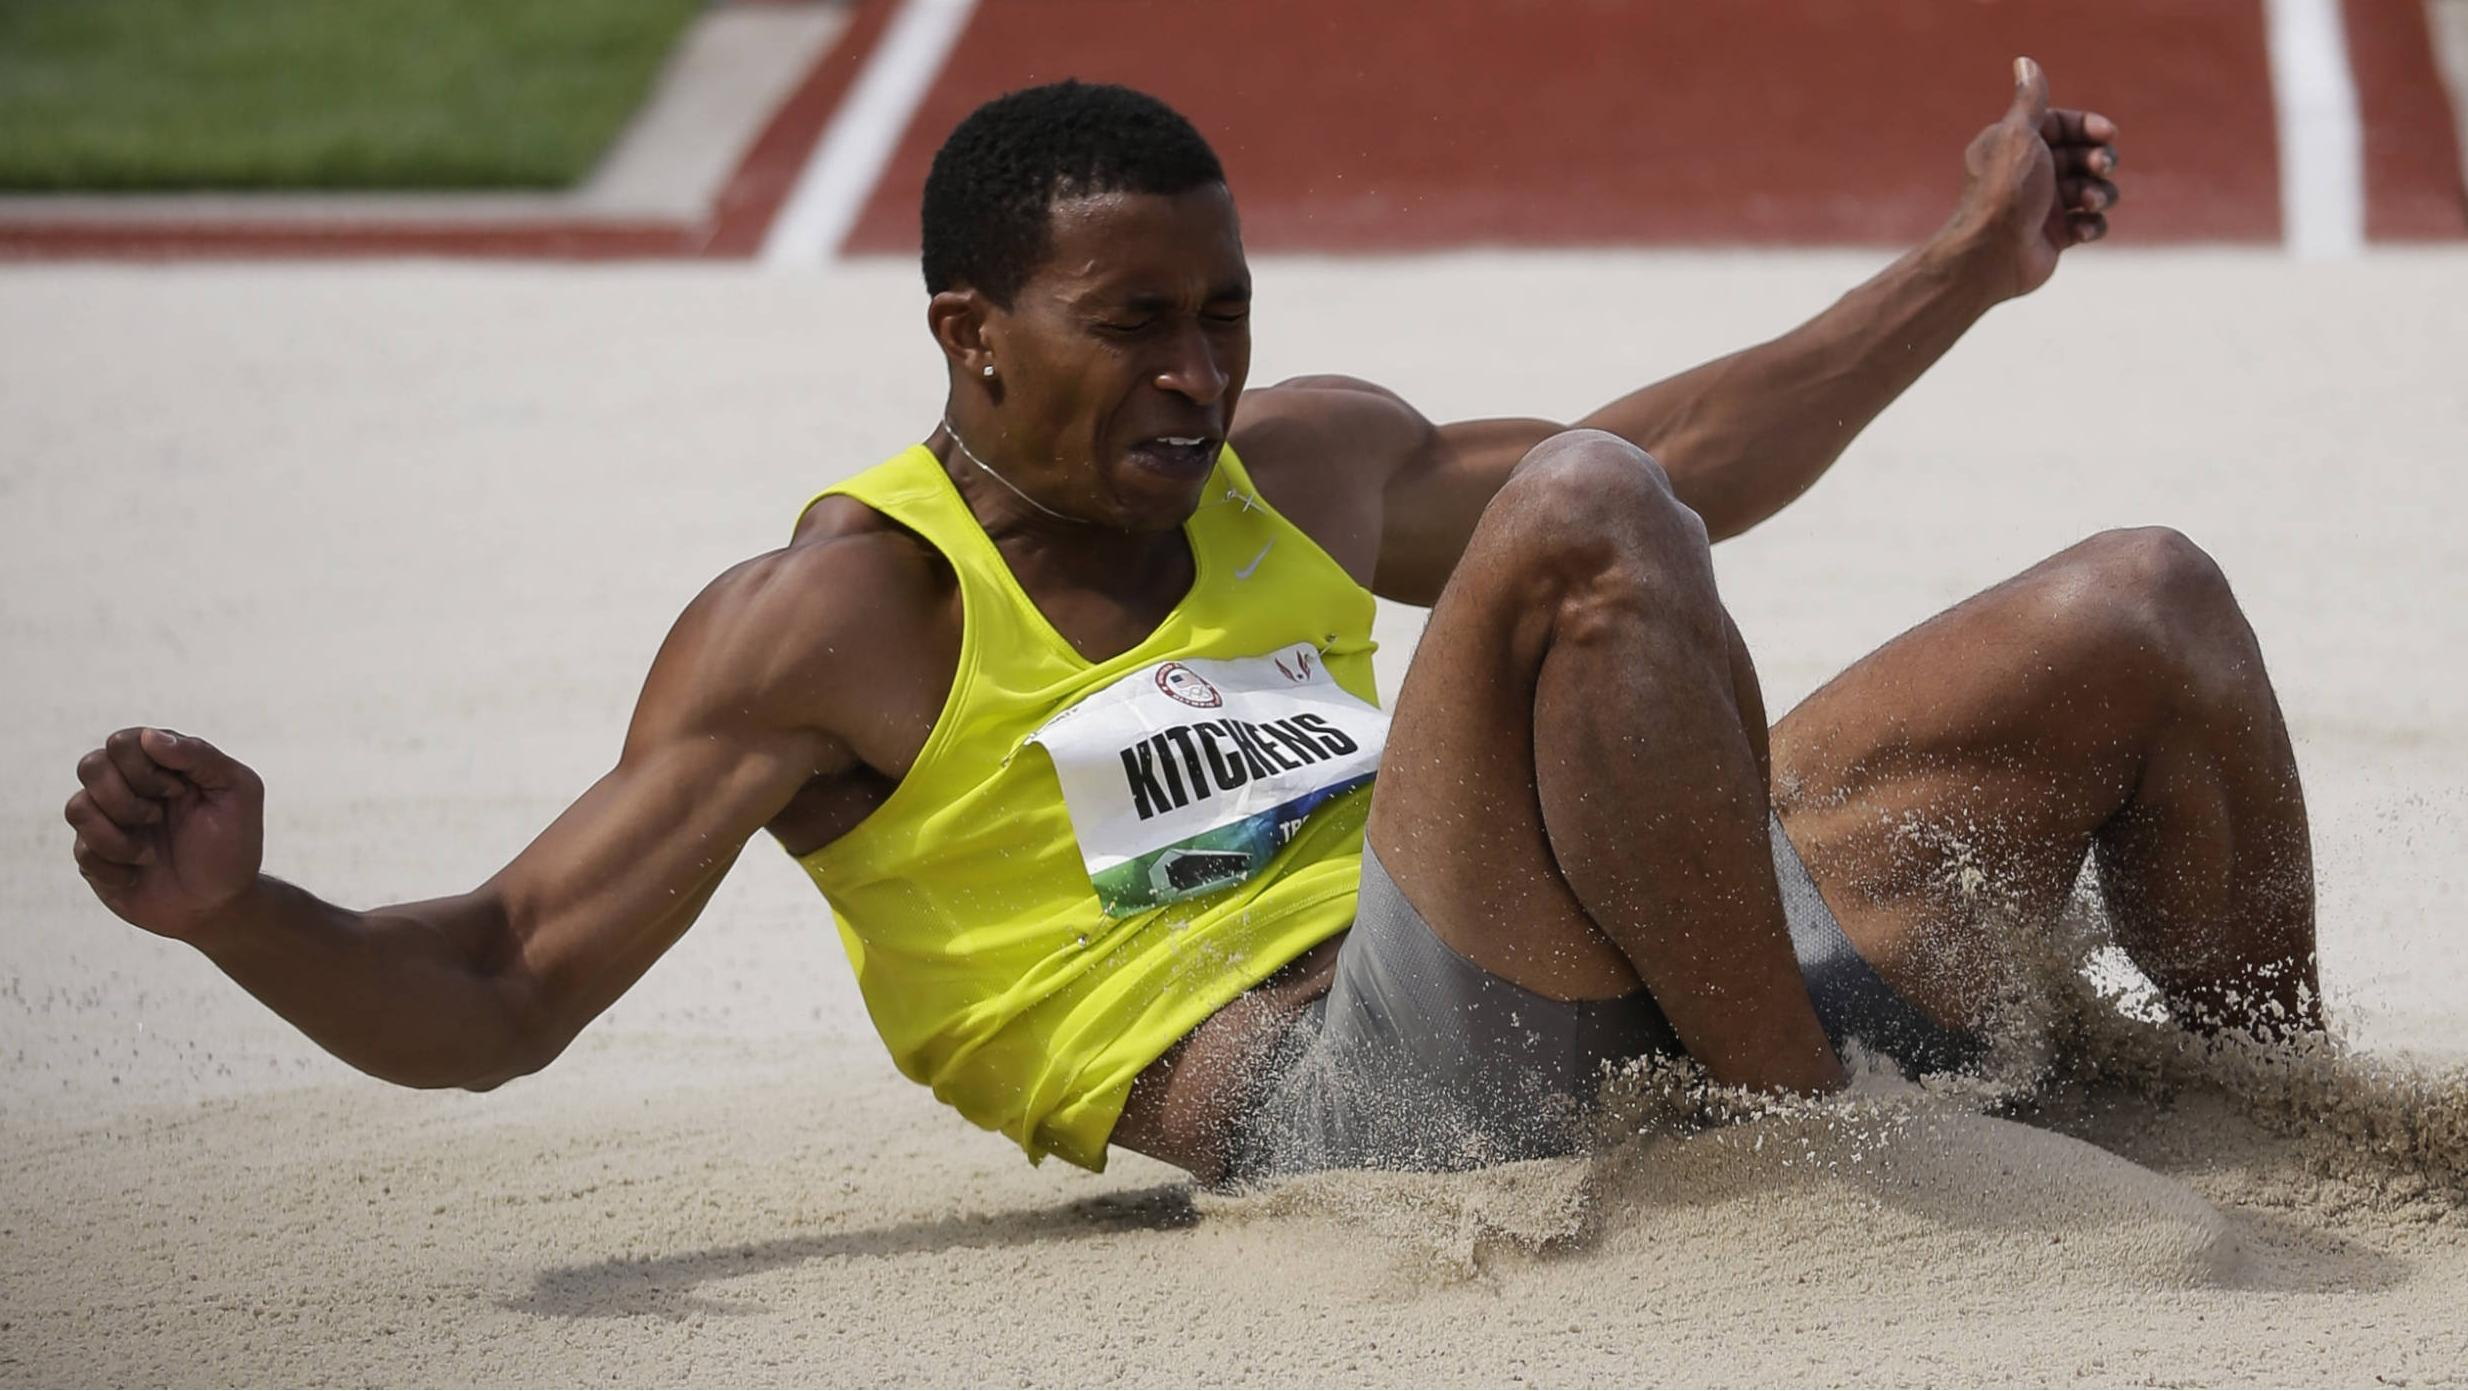 George Kitchens Wins USA Crown in Long Jump